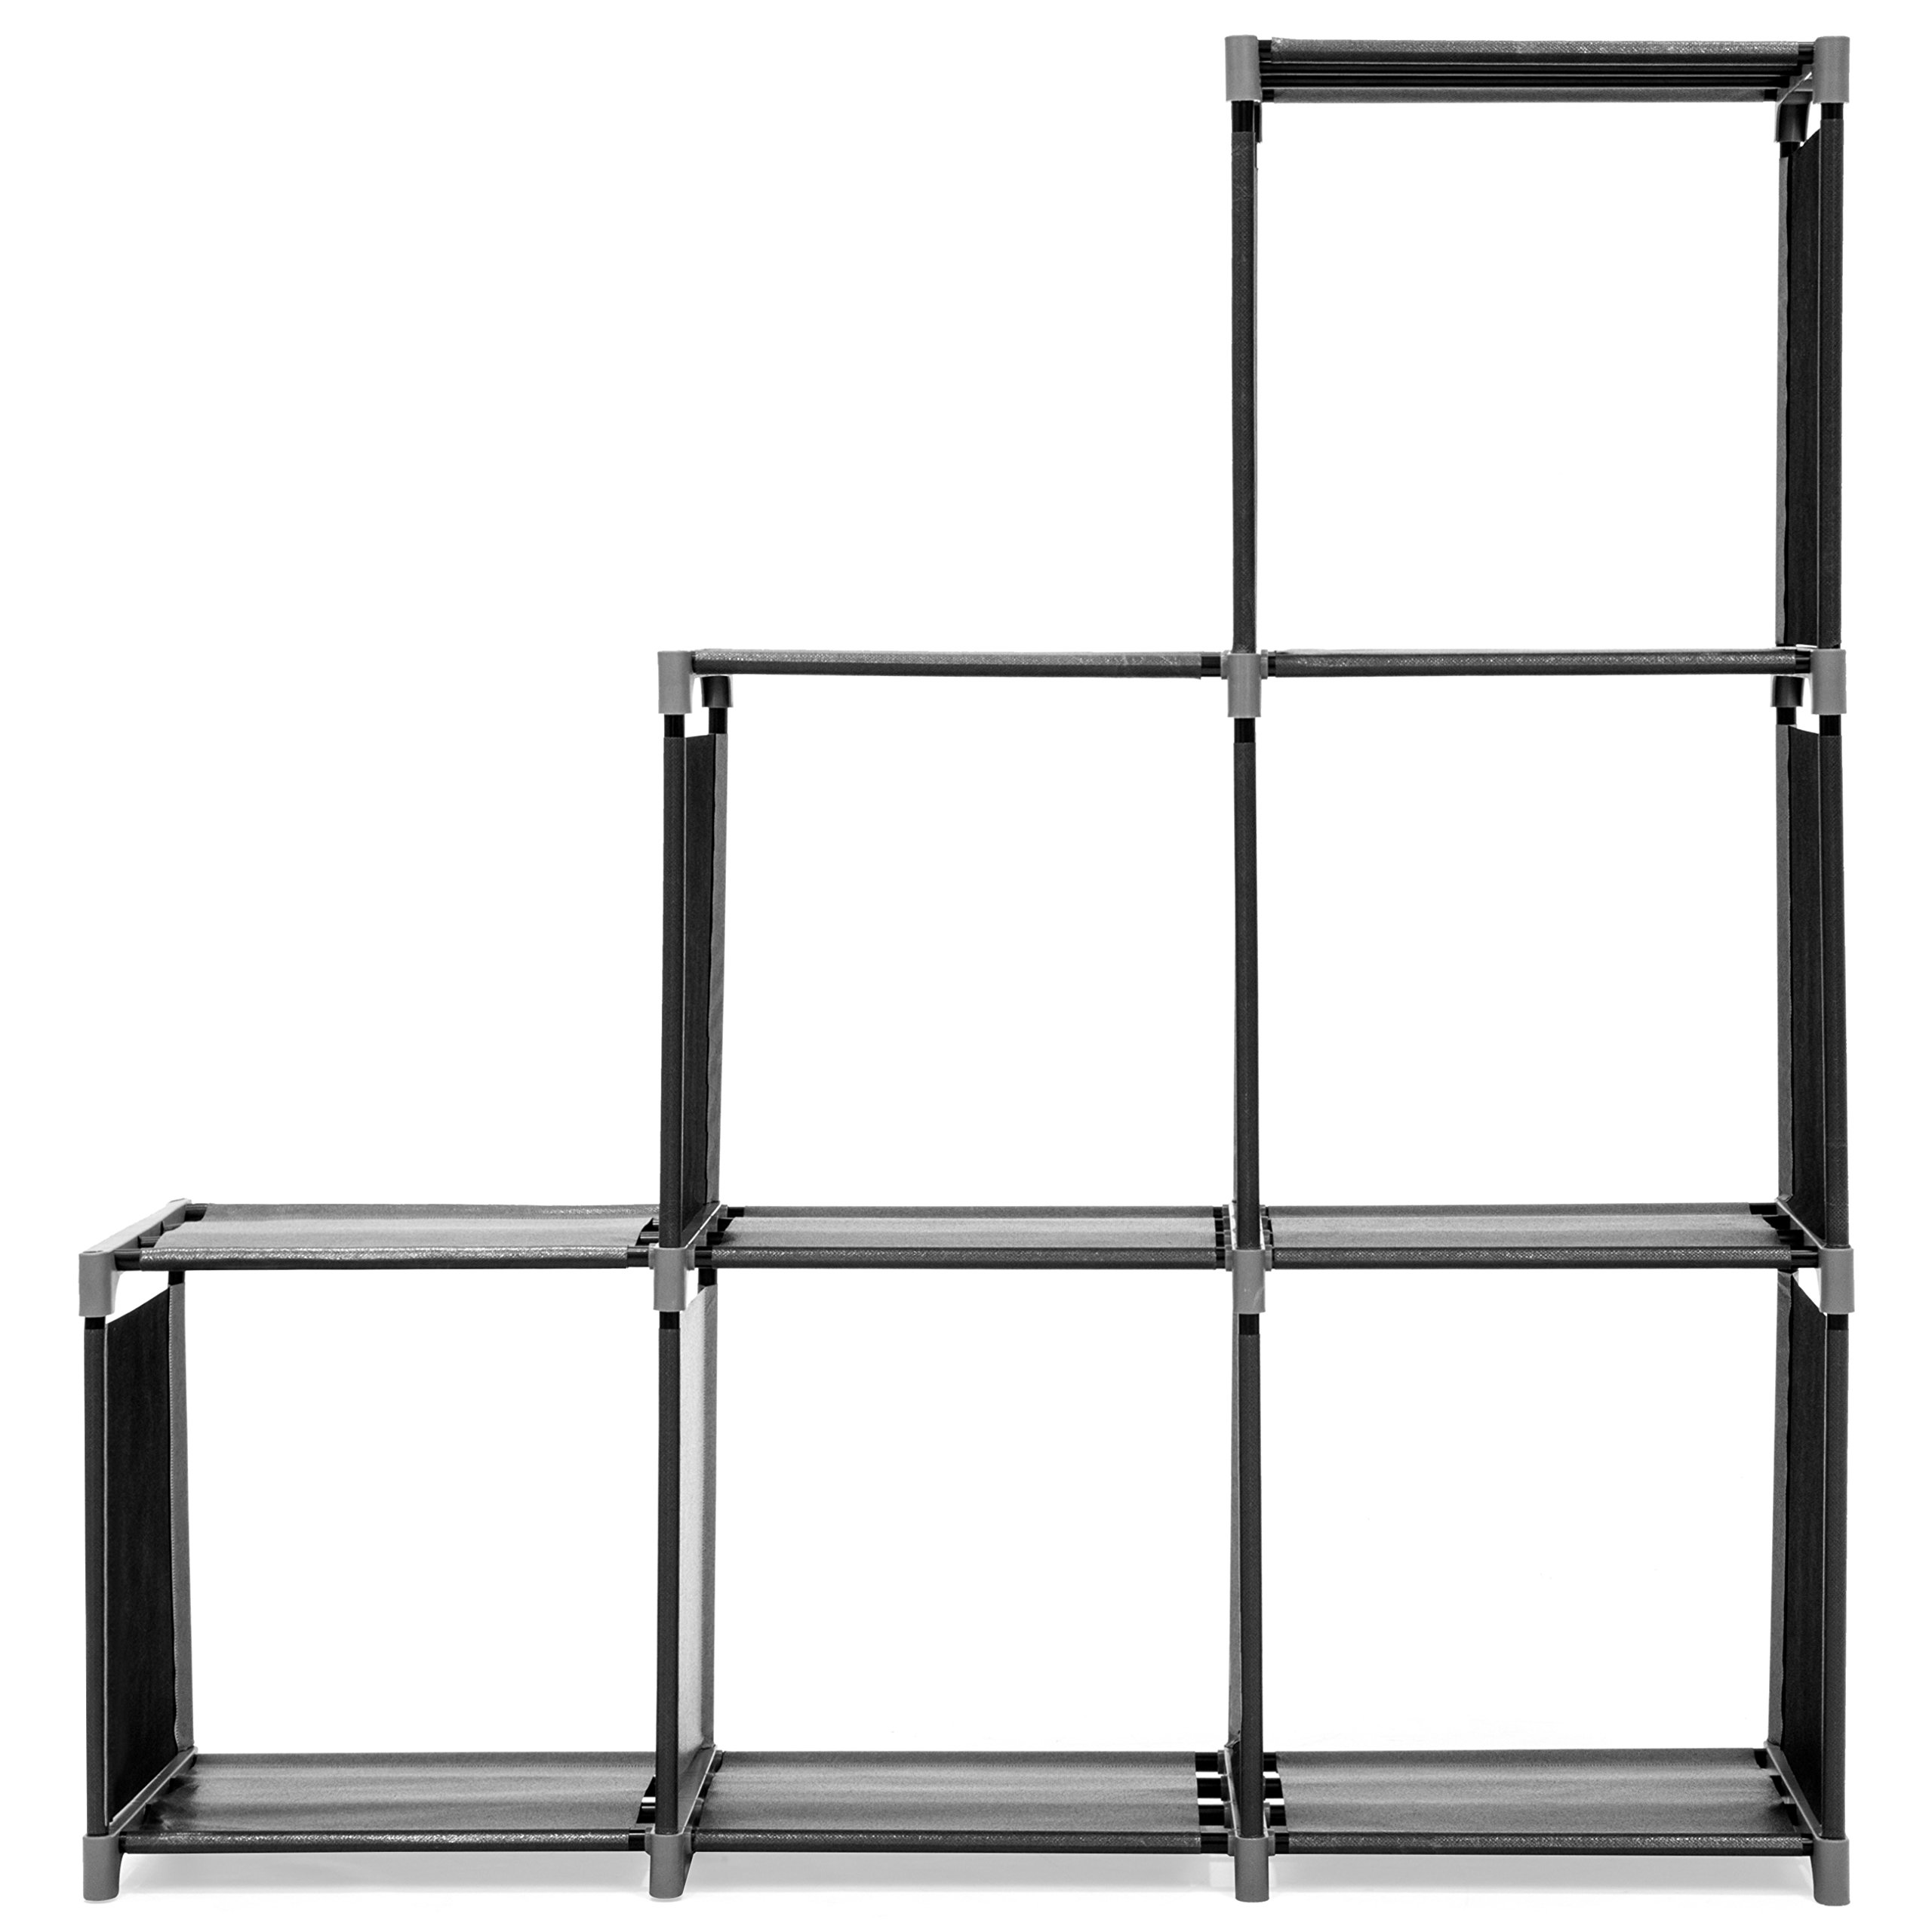 Best Choice Products 6-Drawer Multi-Purpose Shelving Cubby Storage Cabinet (Black) by Best Choice Products (Image #3)